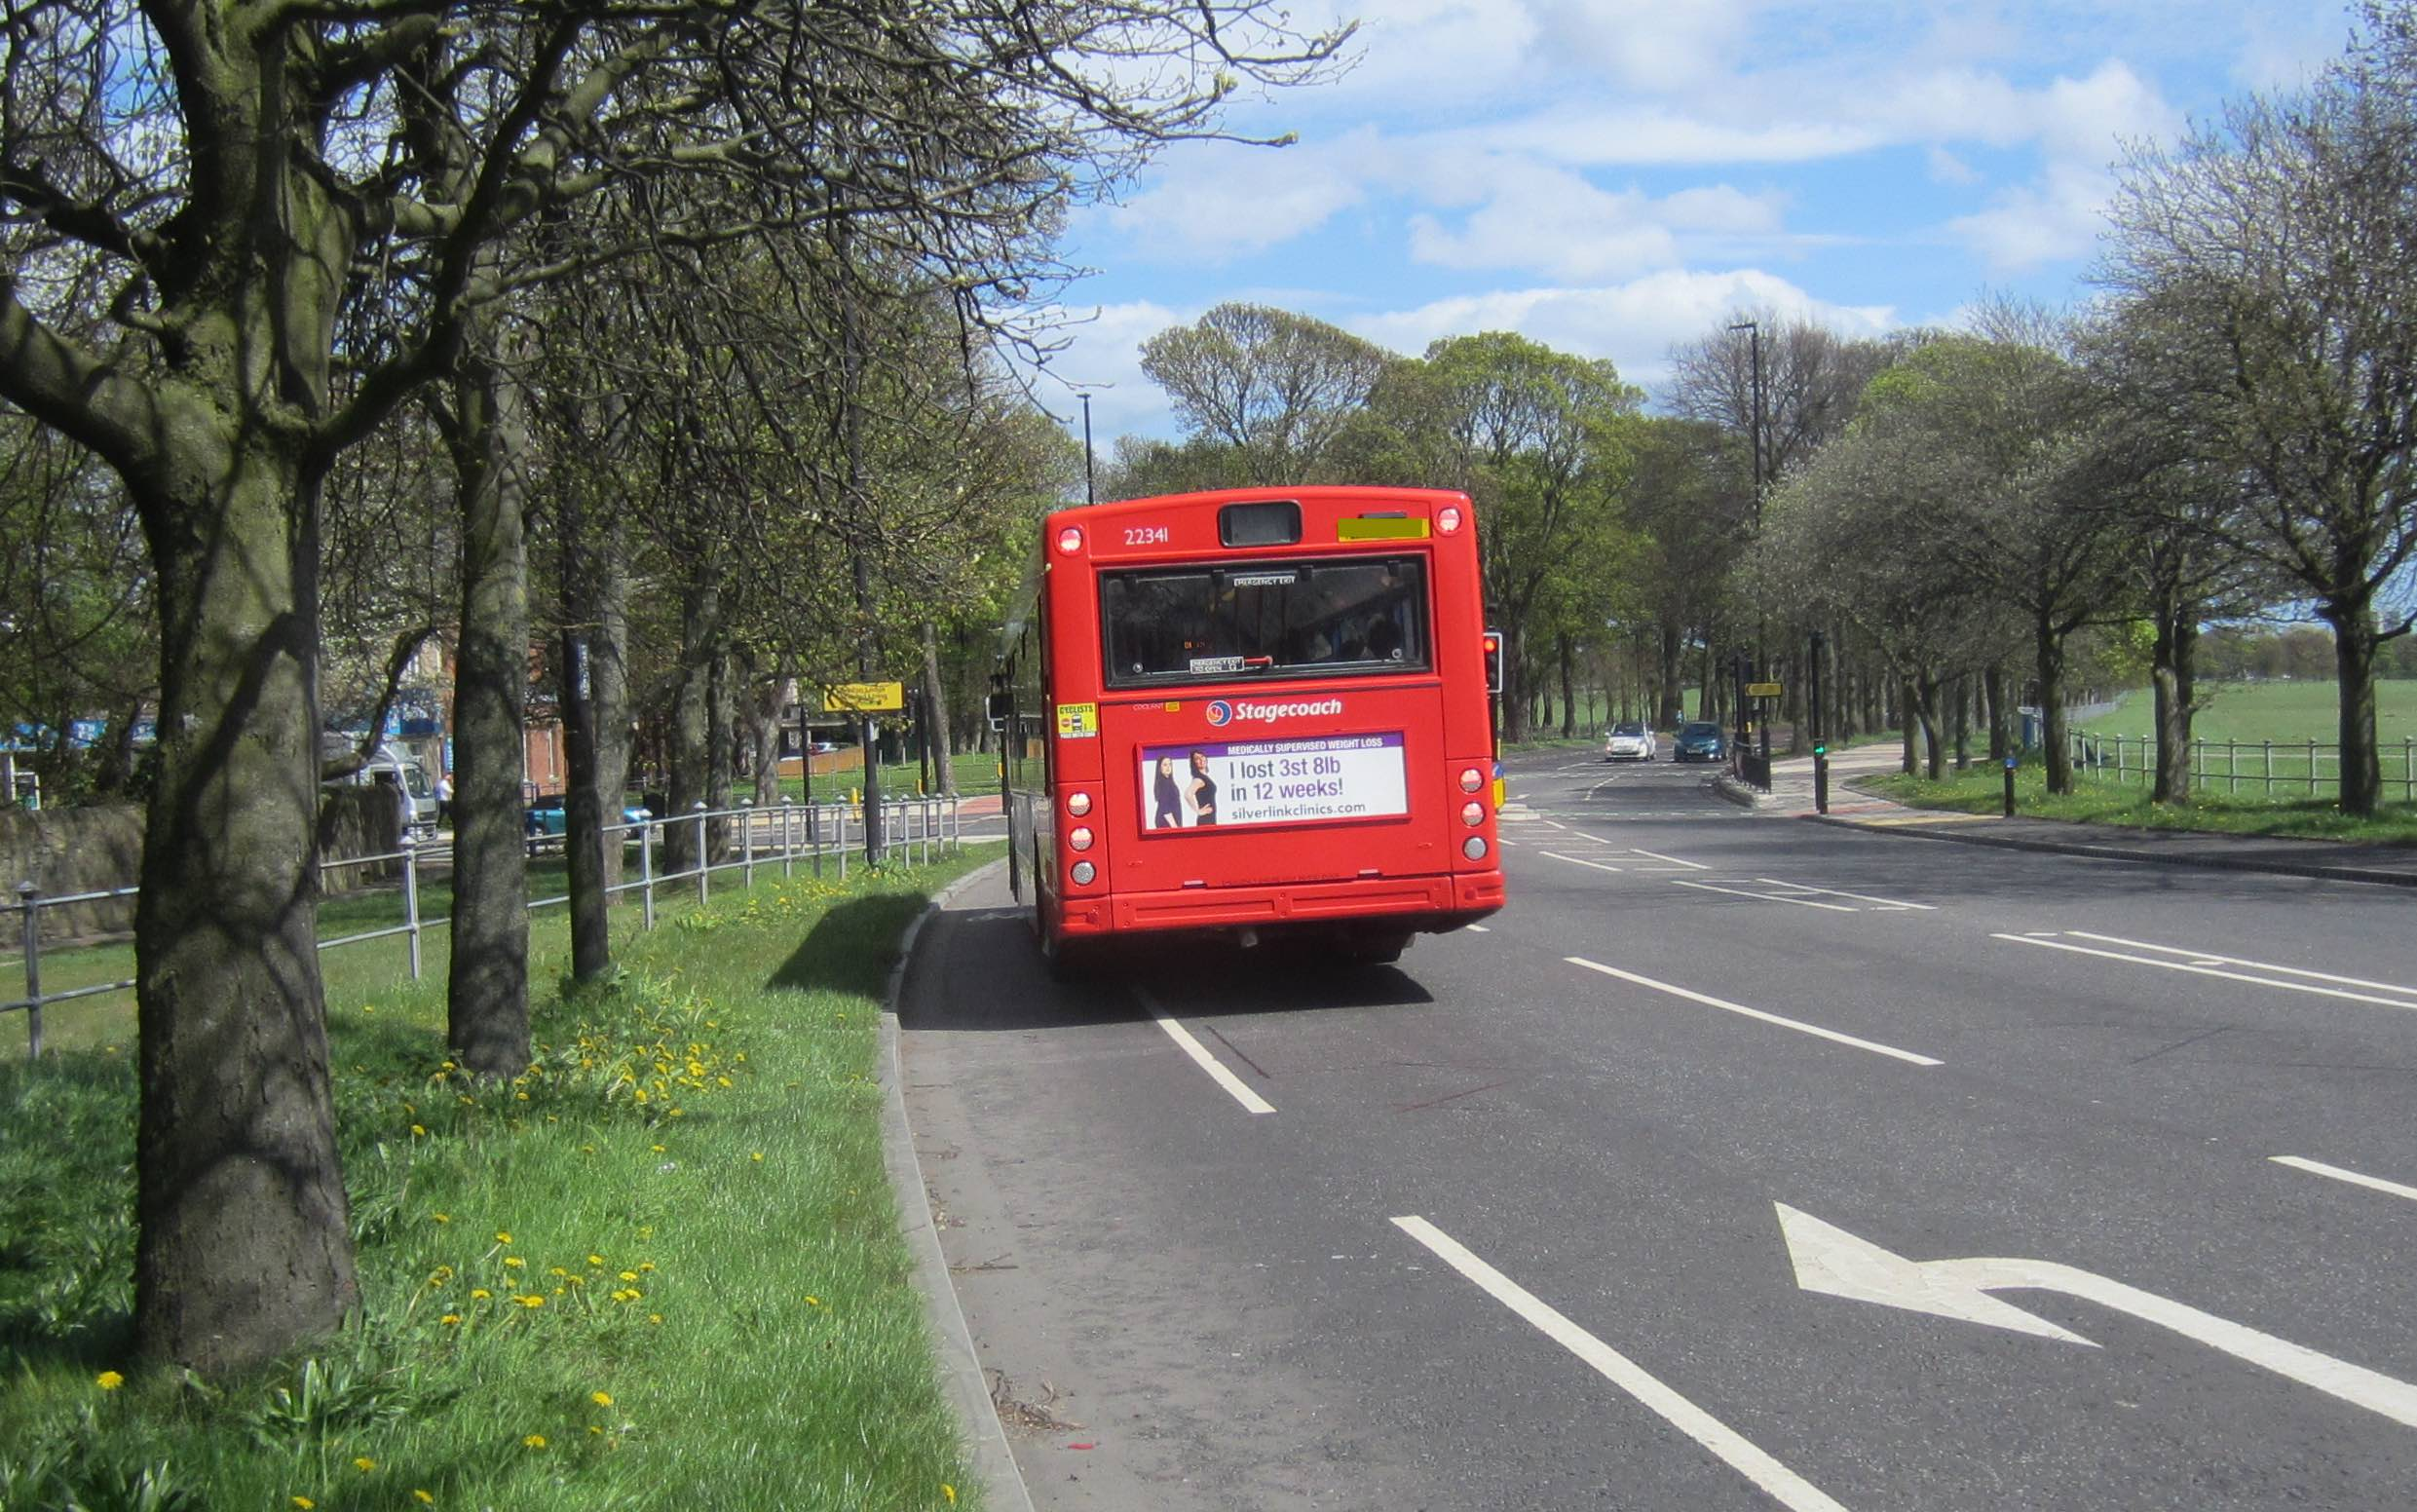 Bus waiting to turn left at the Kenton Road lights stopped partially in the cycle lane.